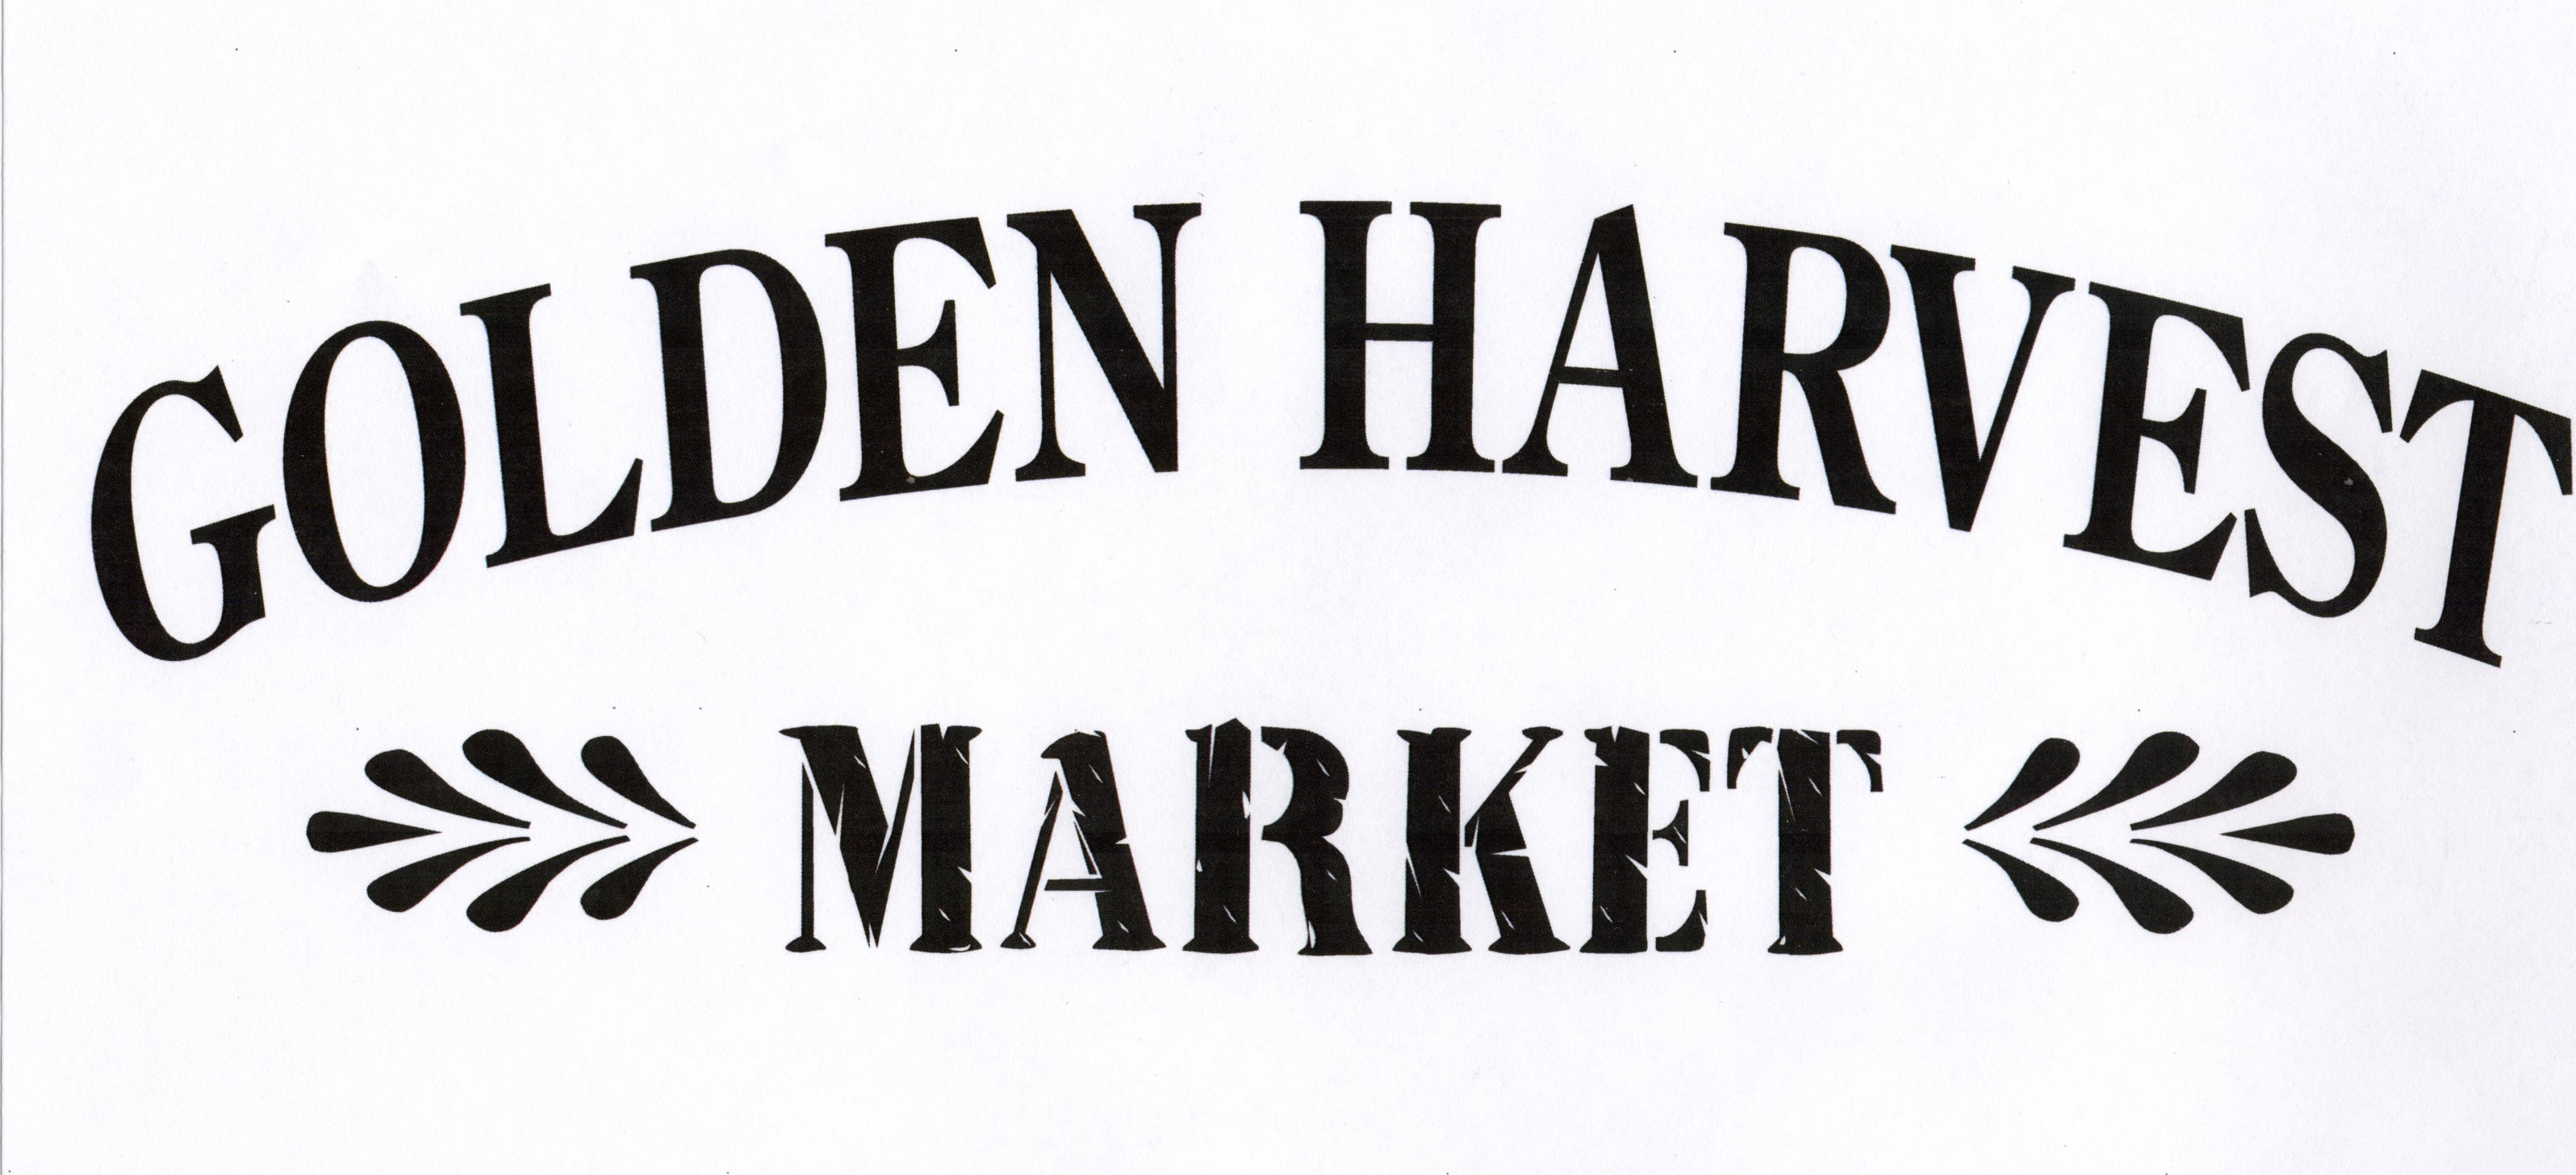 Golden Harvest Market